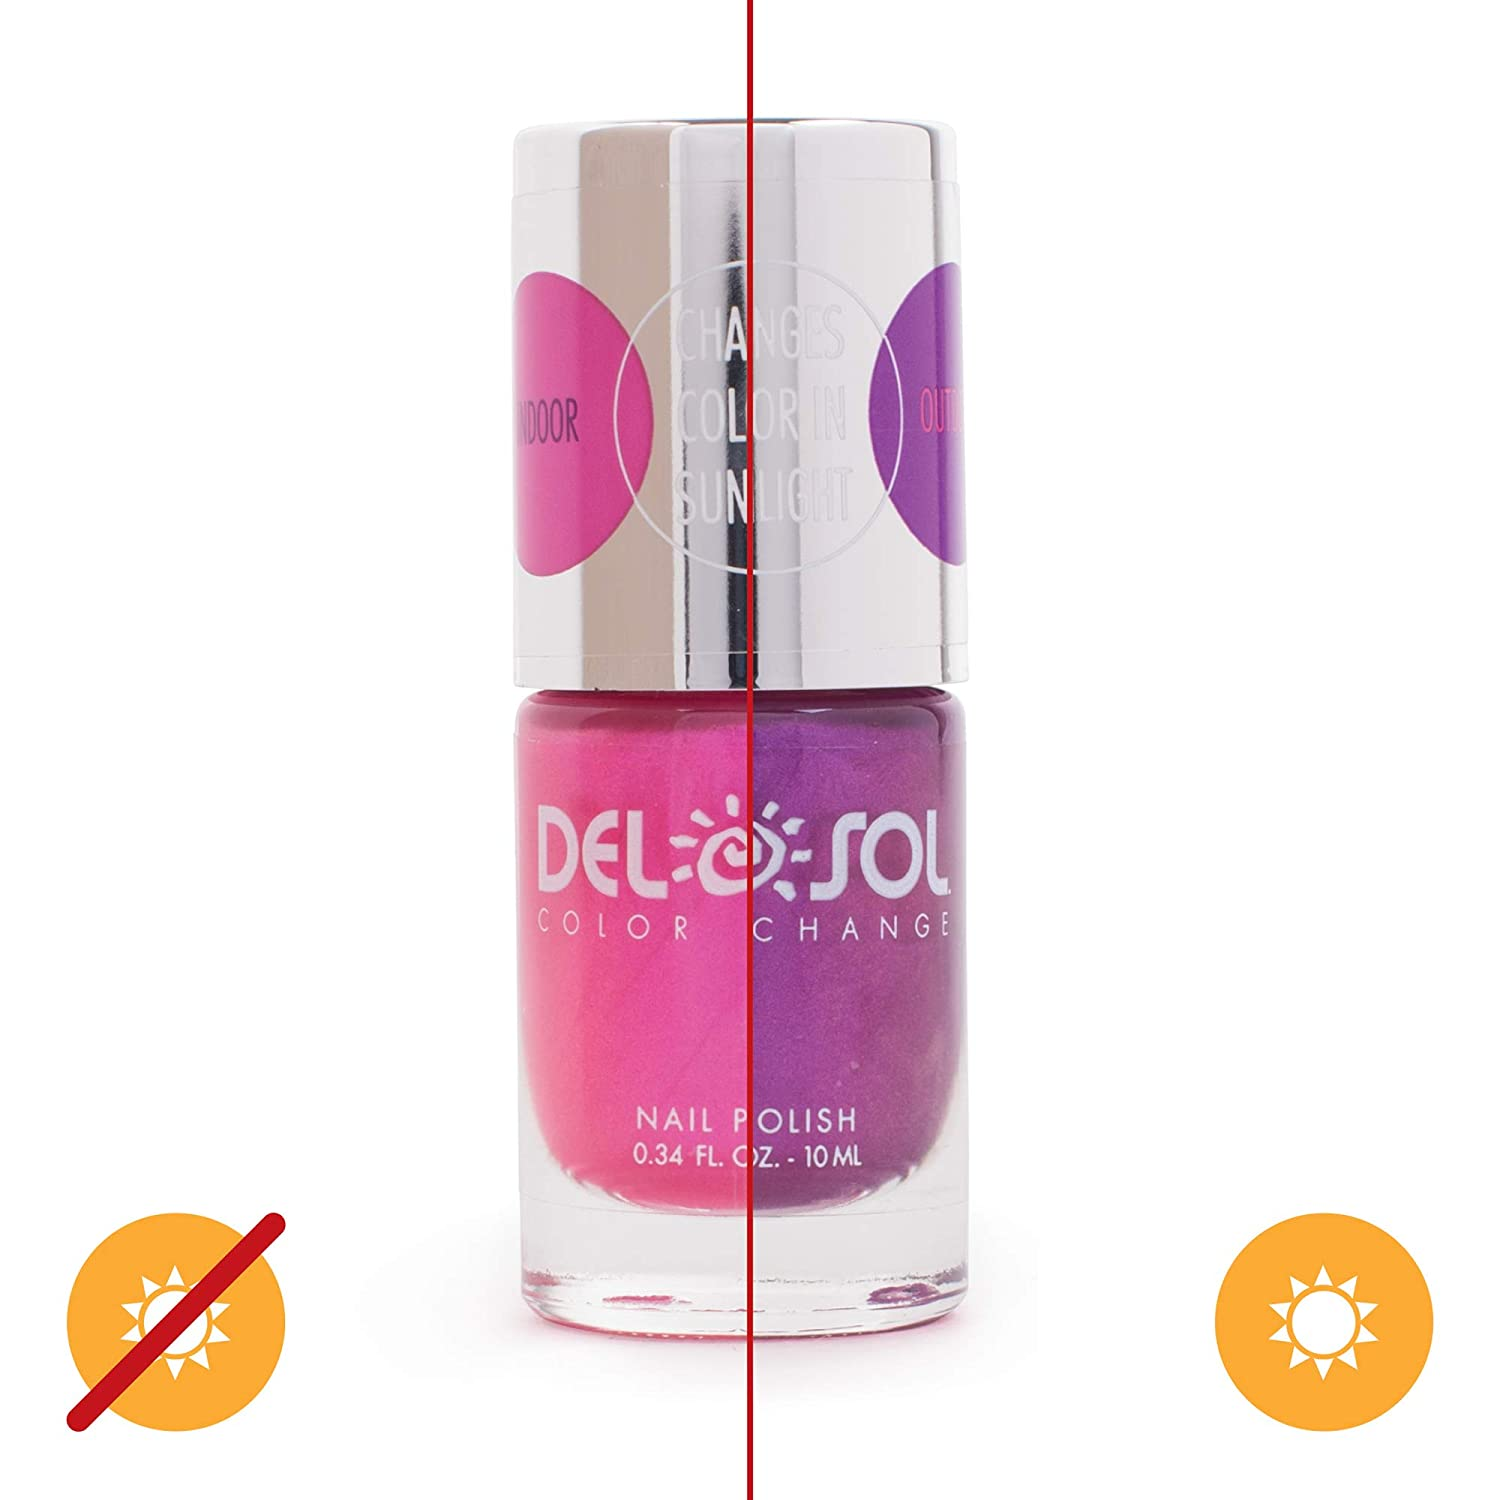 Del Sol Color-Changing Nail Polish - Foxy - Changes Color from Pink to Royal Purple in the Sun - Quick dry, 5-Free Nail Lacquer - .34 fl oz/ 10mL